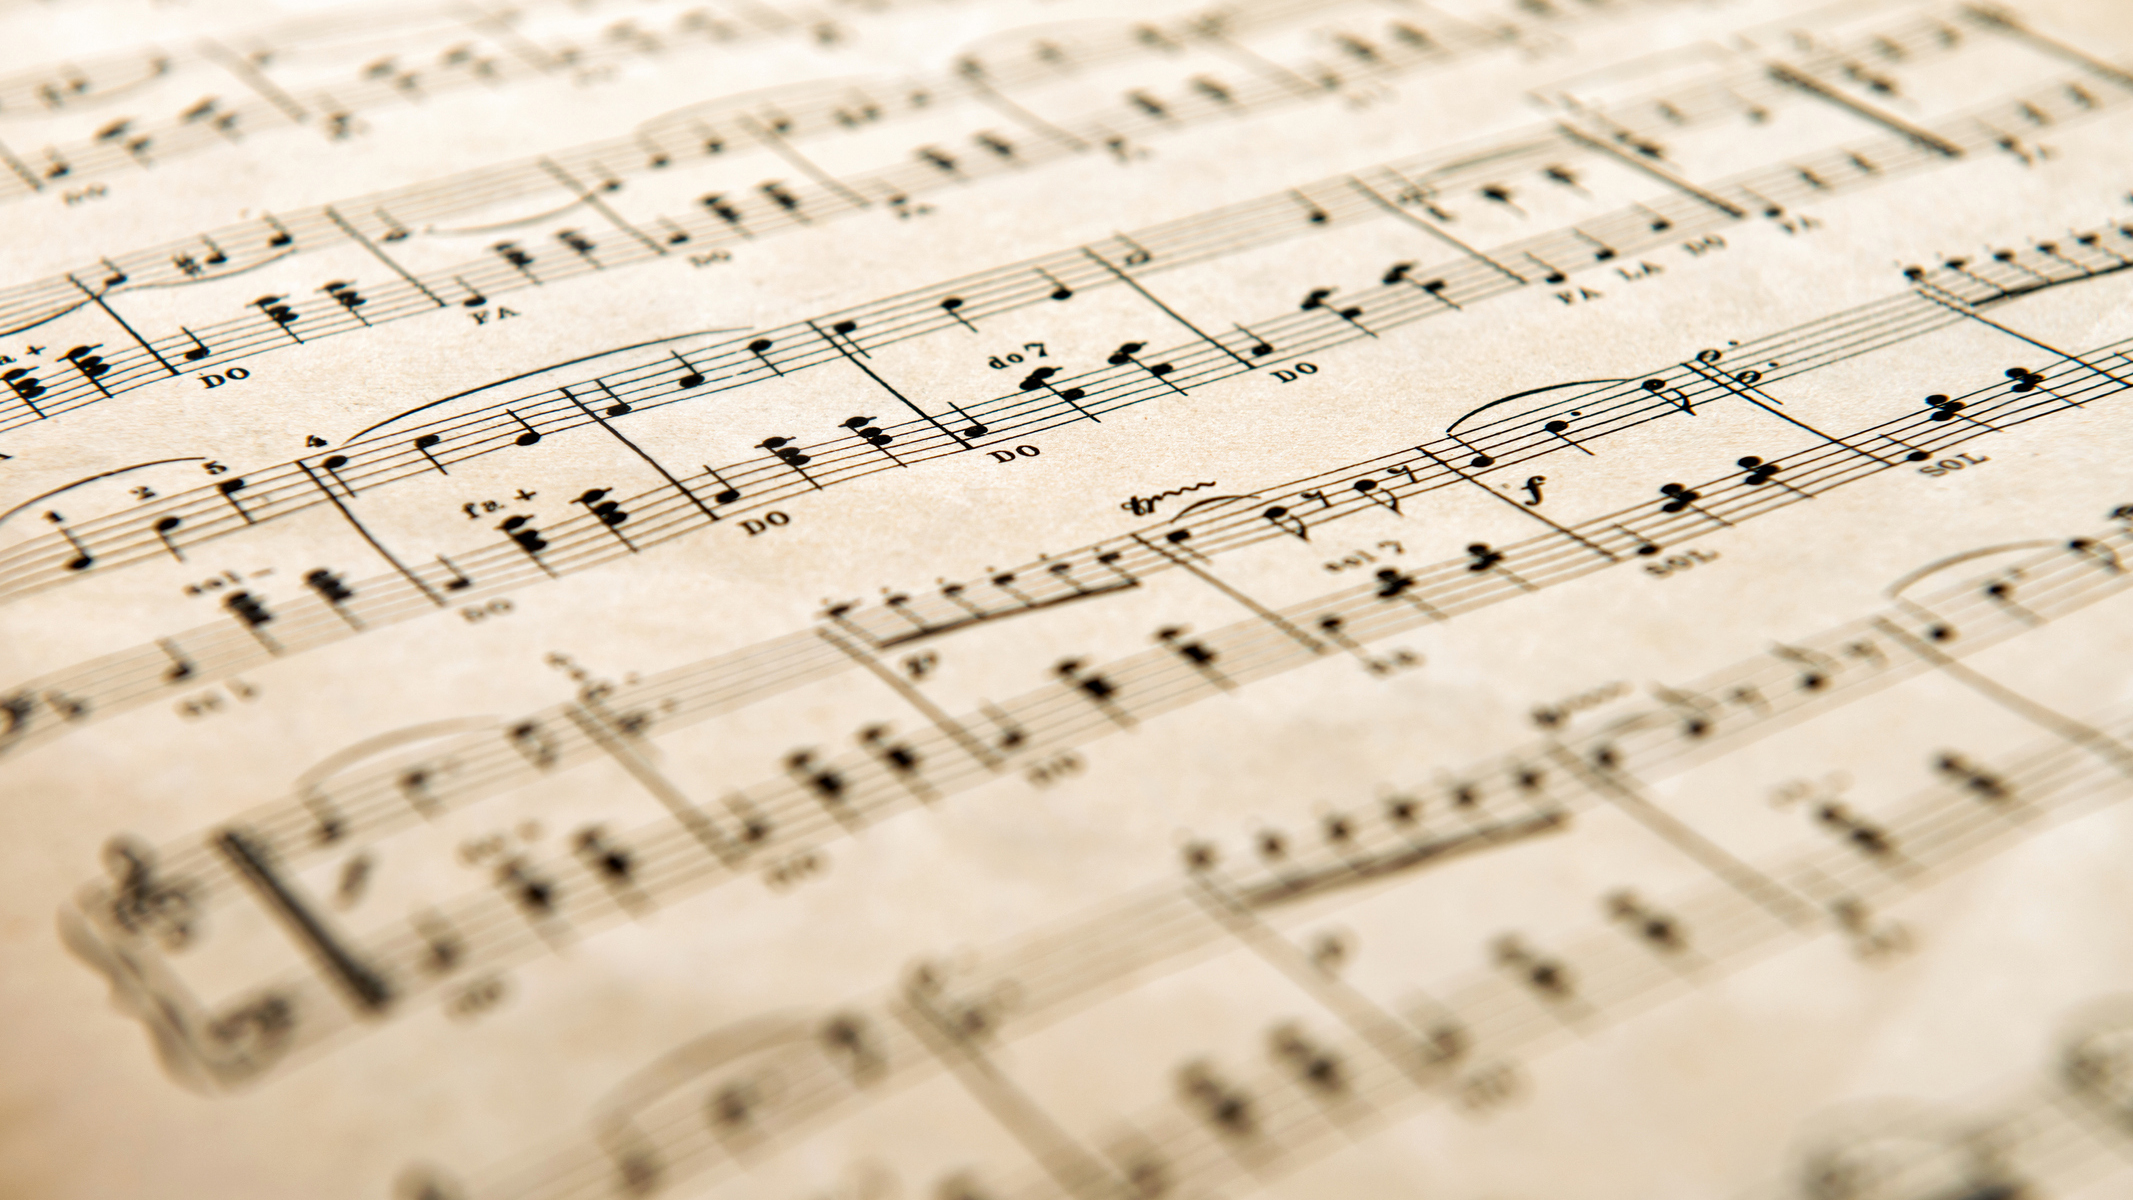 Low angle view of an old yellowed aged music score with shallow dof